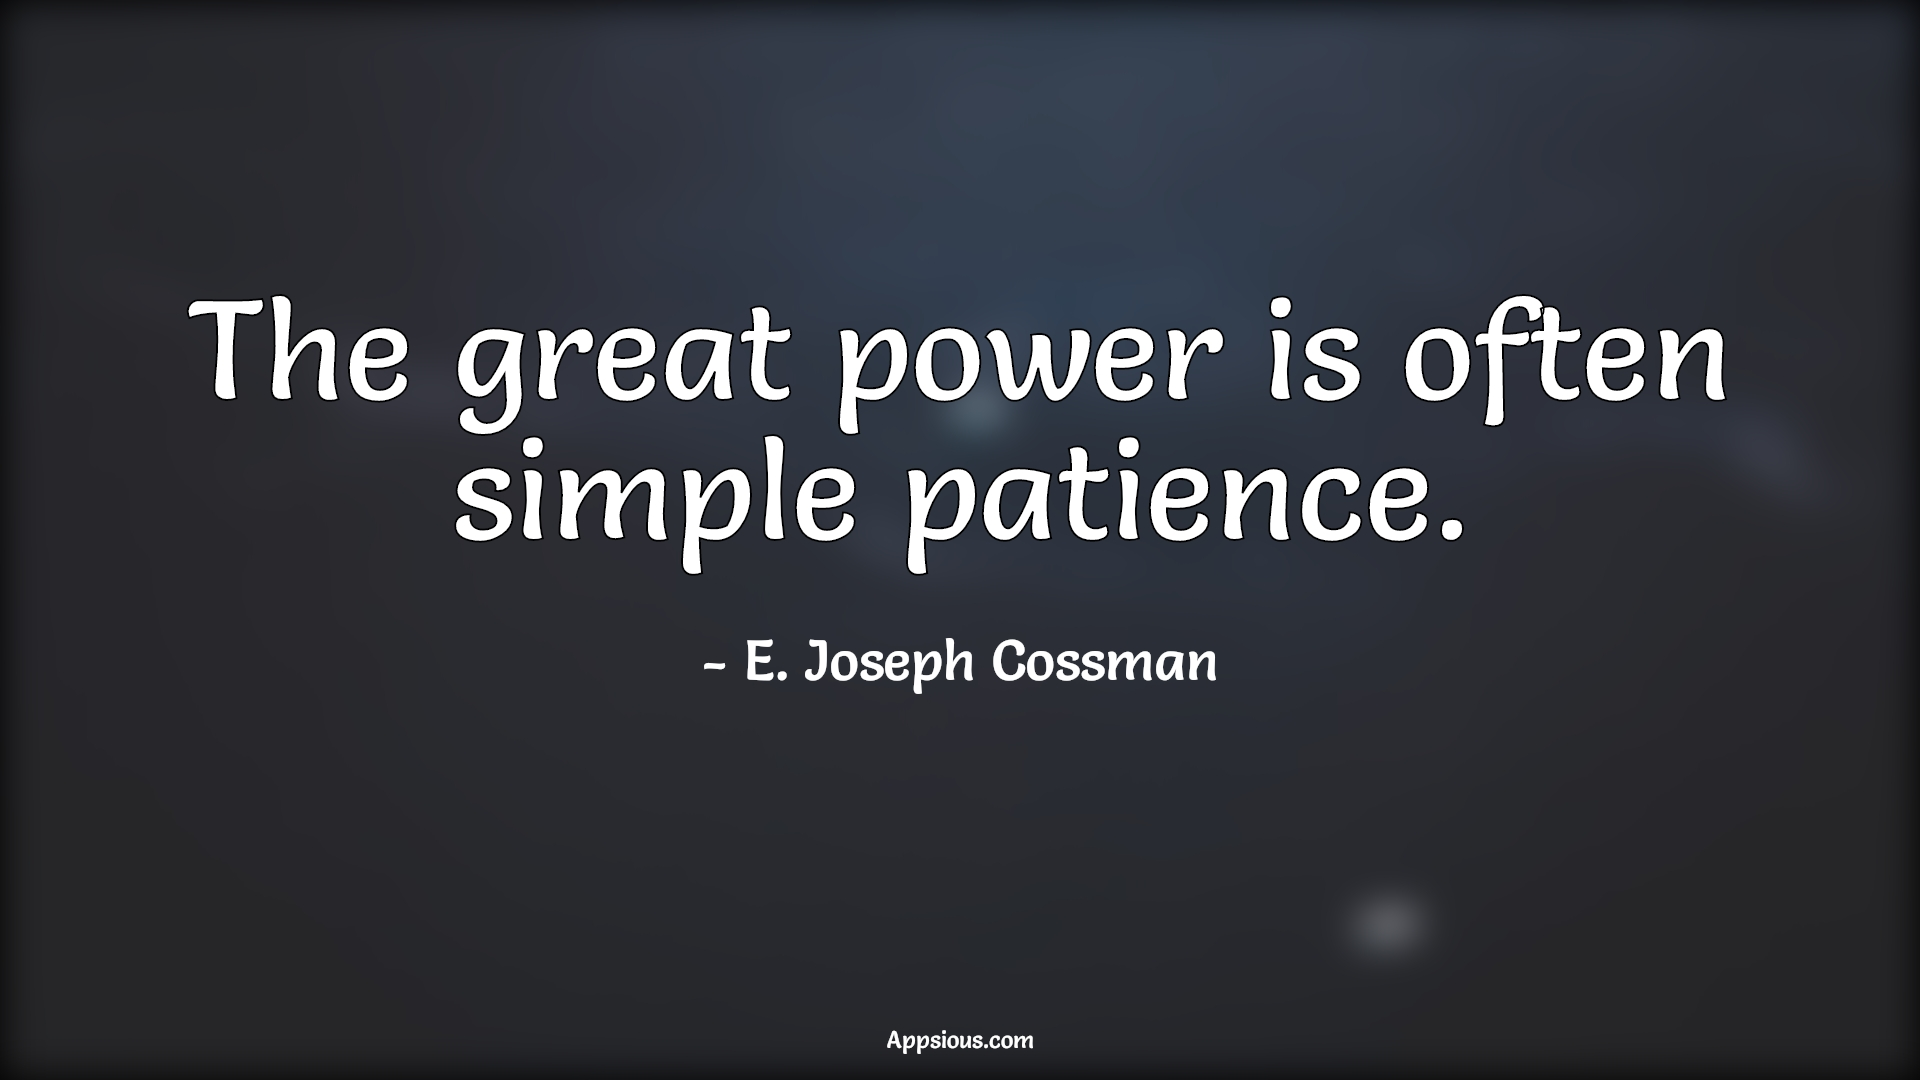 The great power is often simple patience.